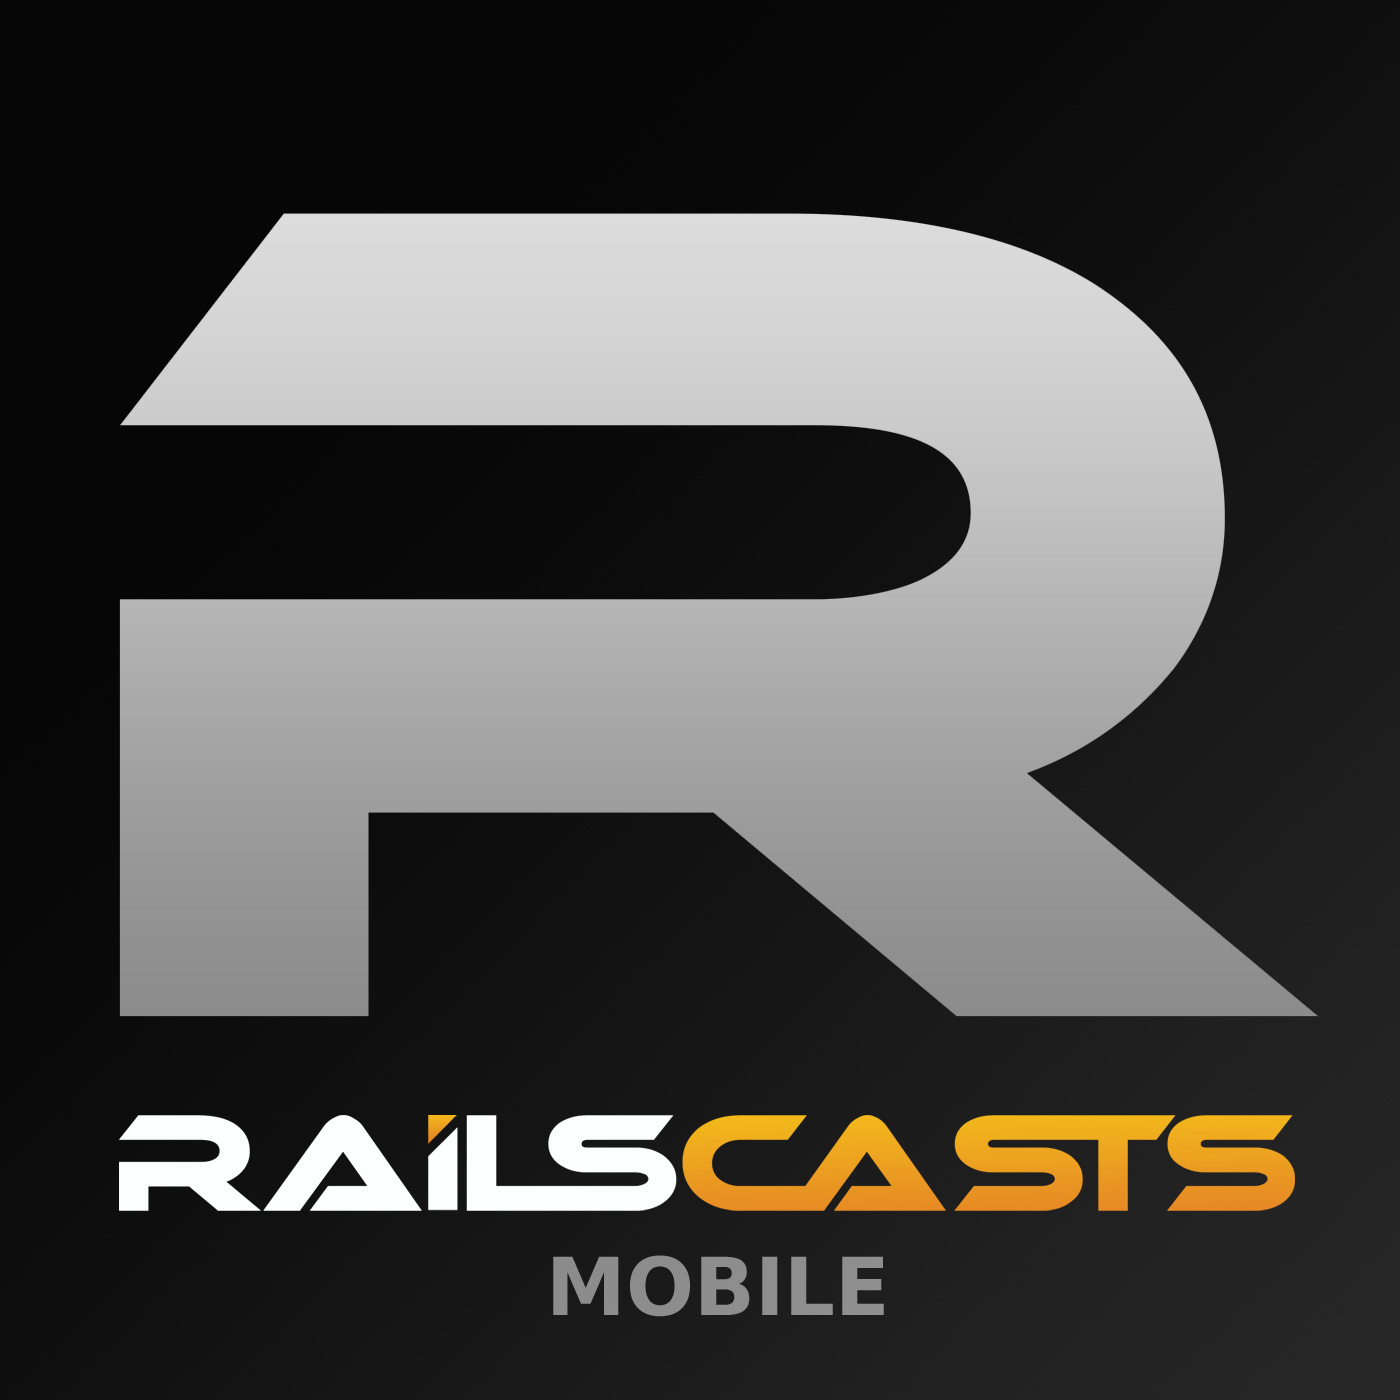 RailsCasts (Mobile)